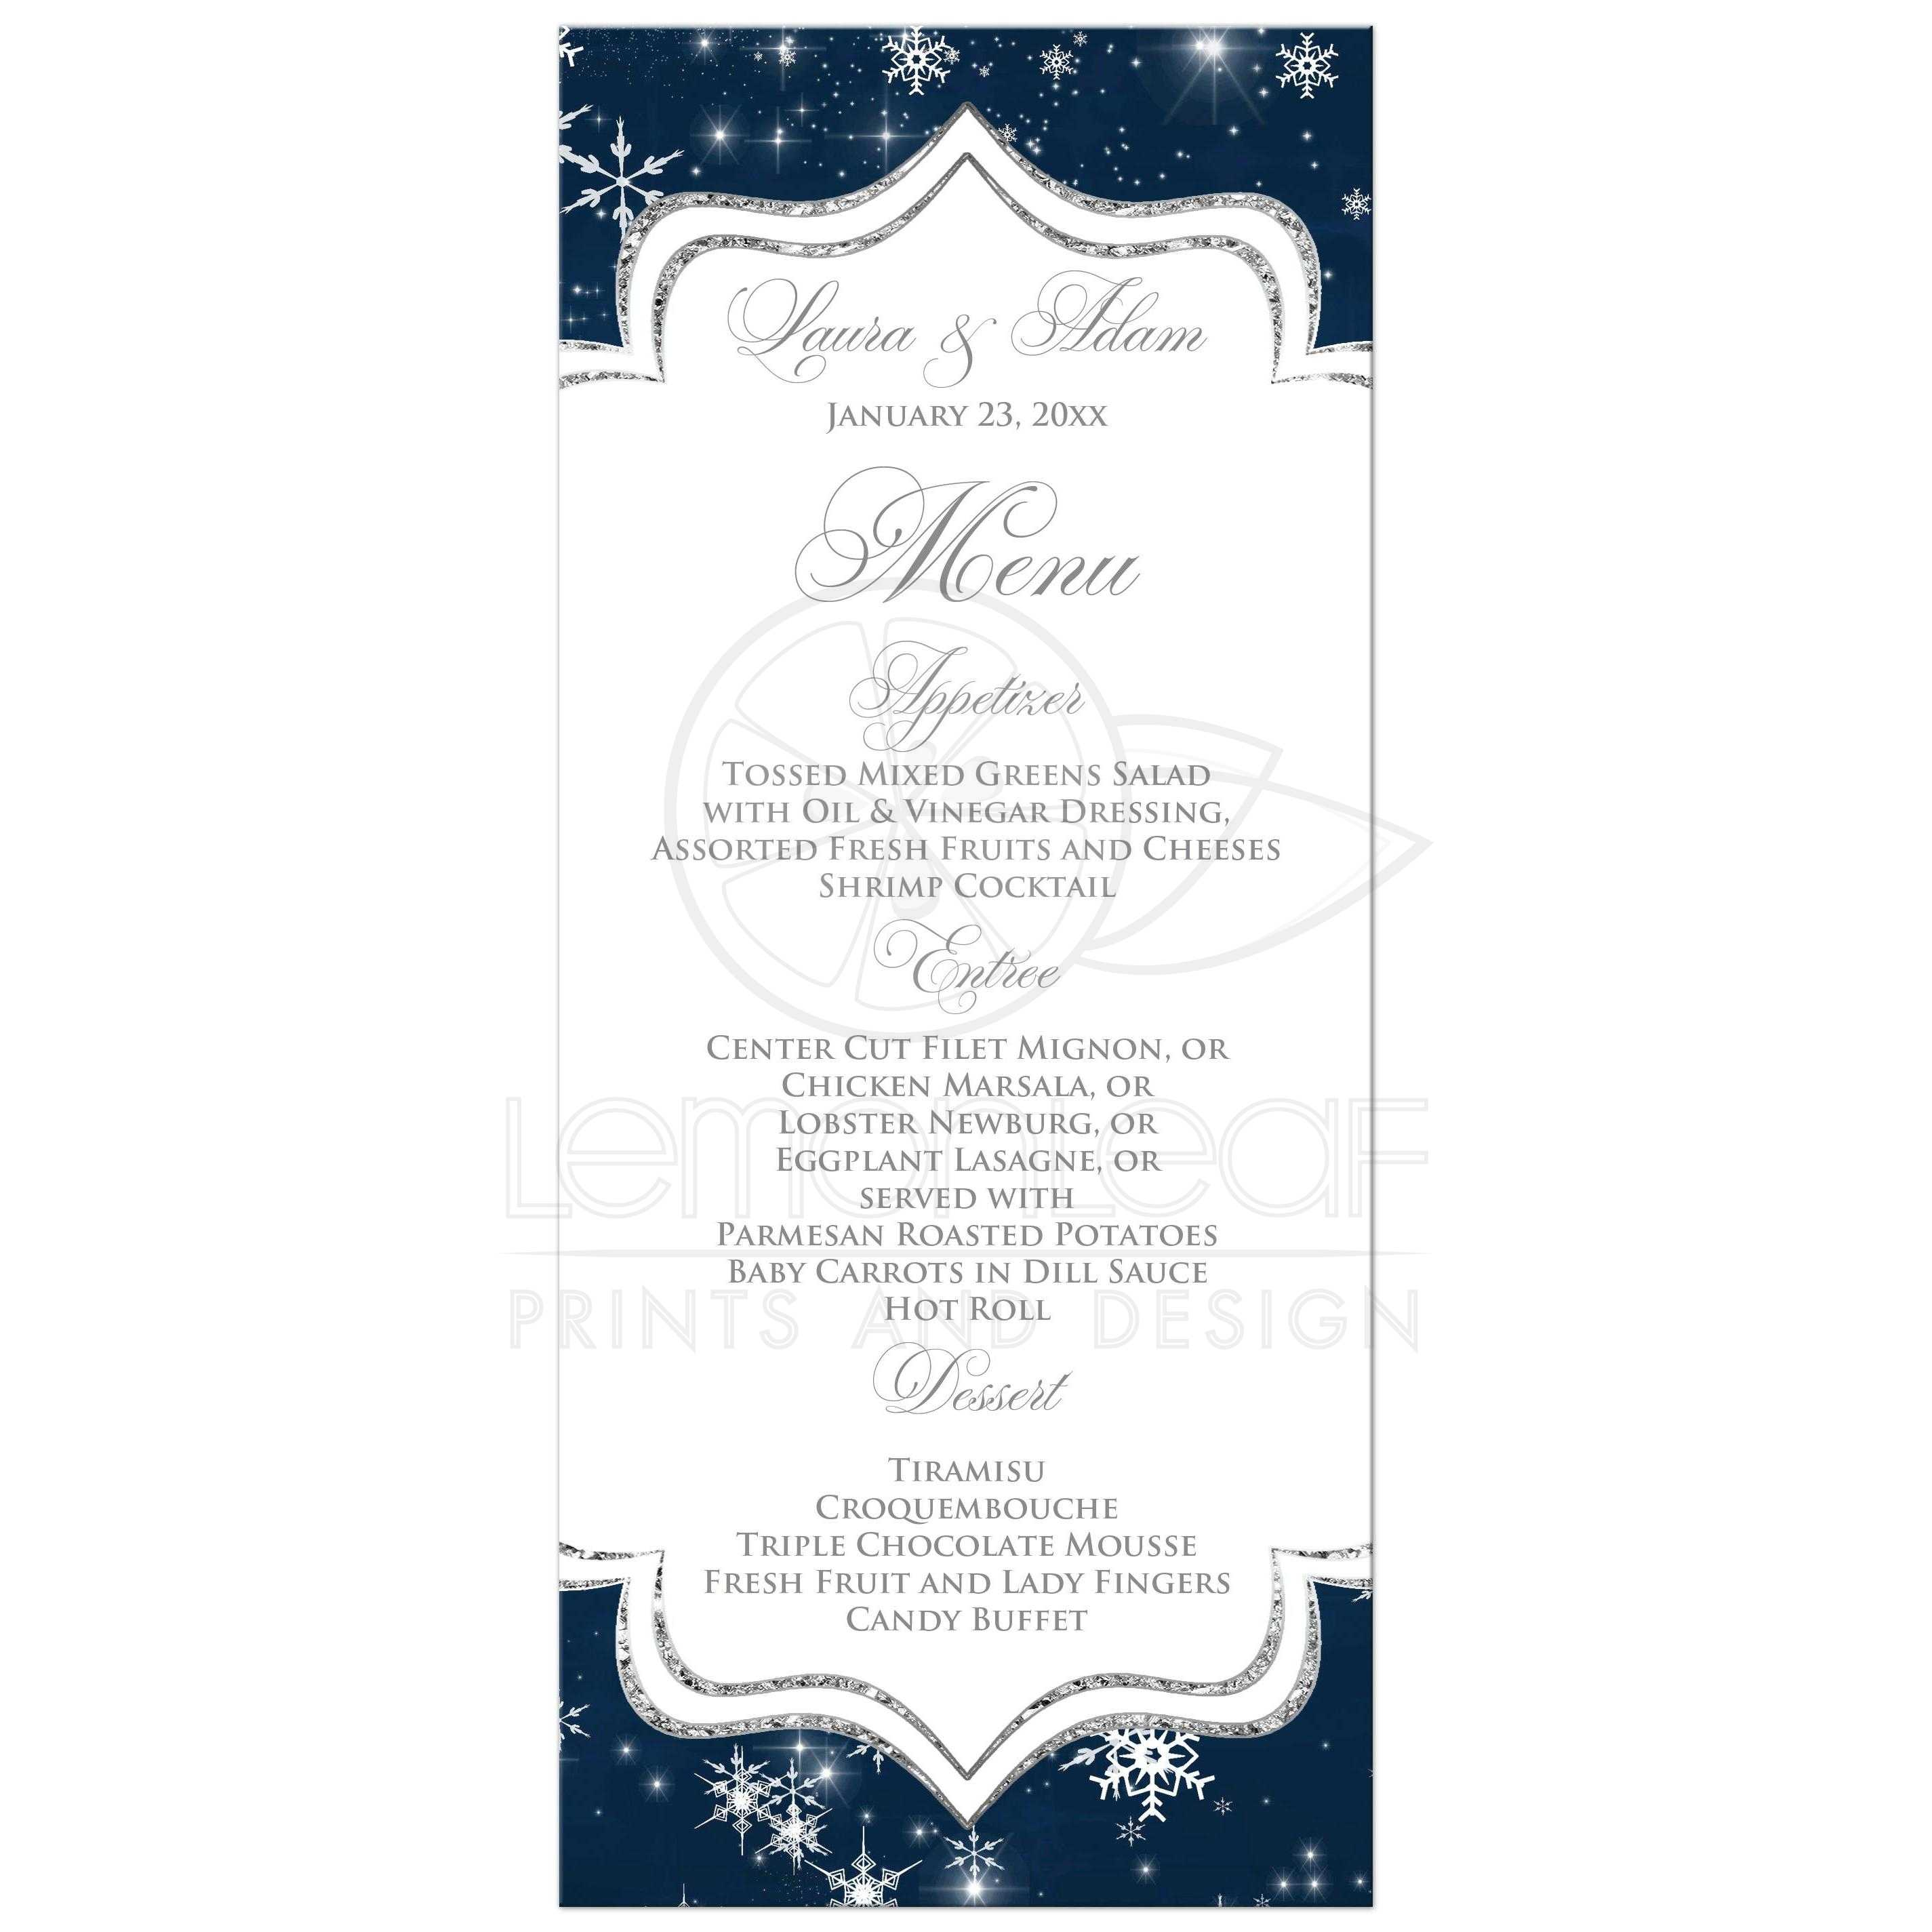 A Wintry Night Wedding Menu Card | Snowflakes, Stars | Navy, White ...